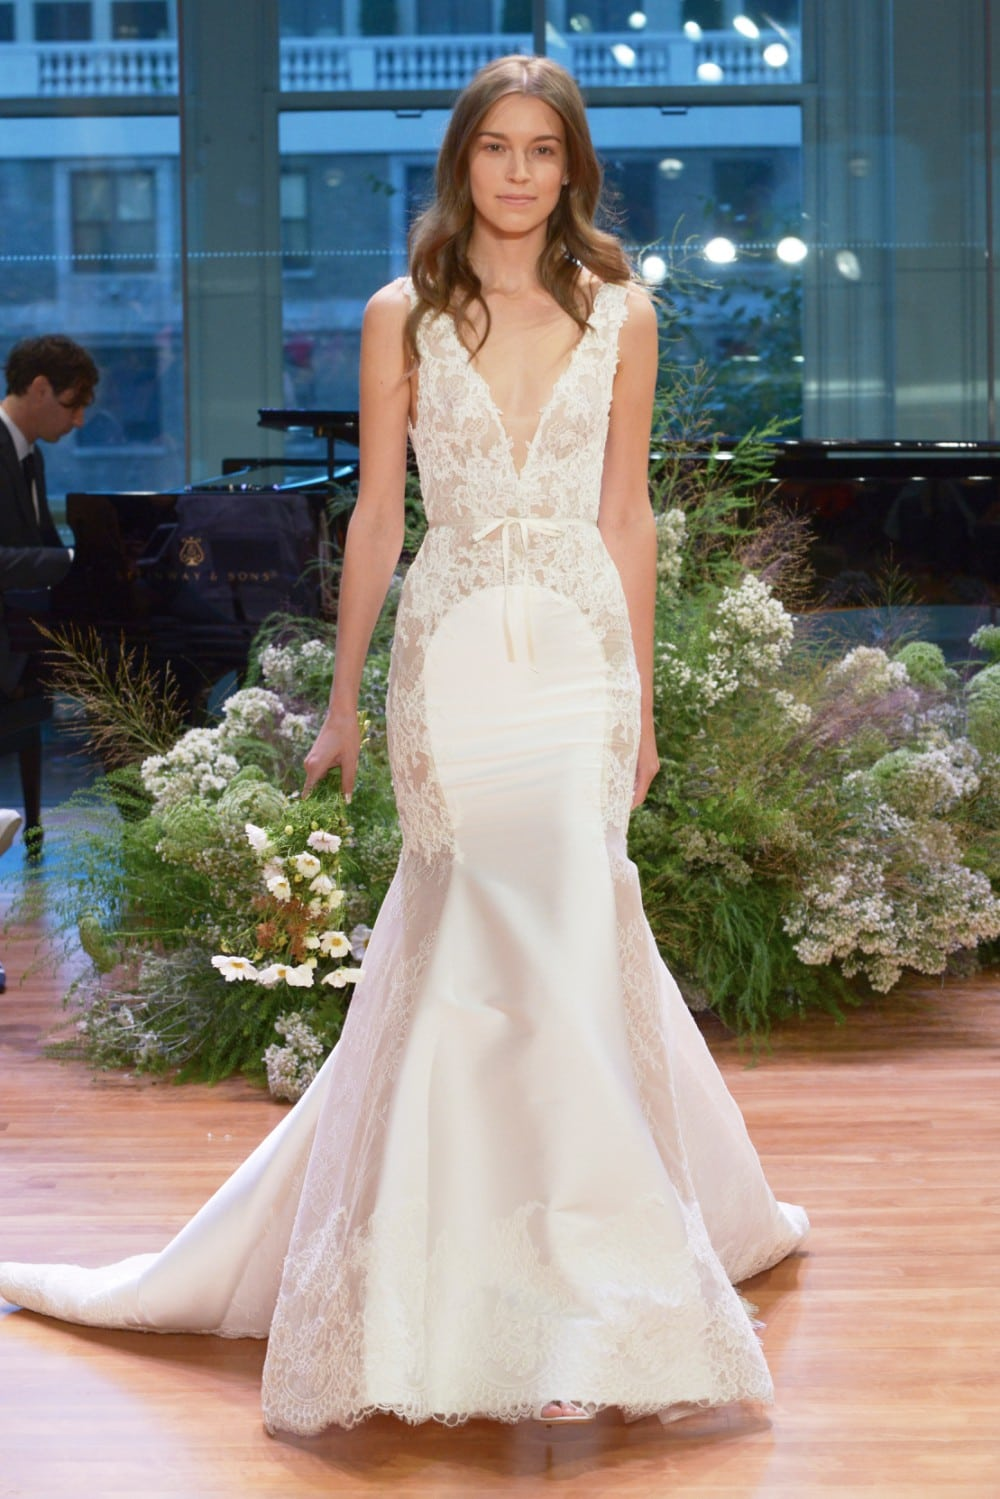 Sheer Lace Wedding Dress | 'Remember' by Monique Lhuiller